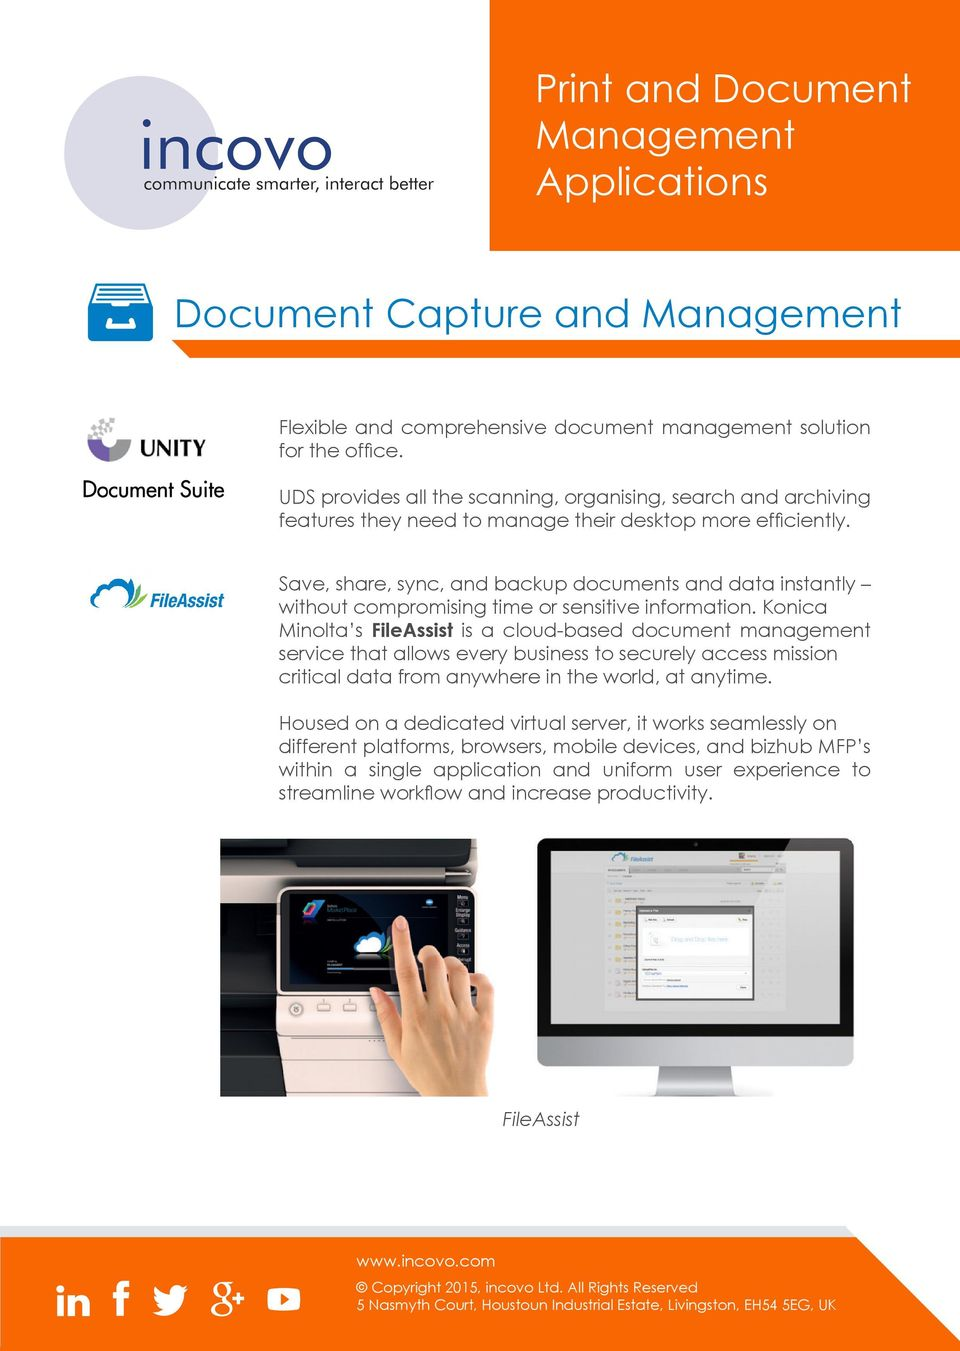 Save, share, sync, and backup documents and data instantly without compromising time or sensitive information.